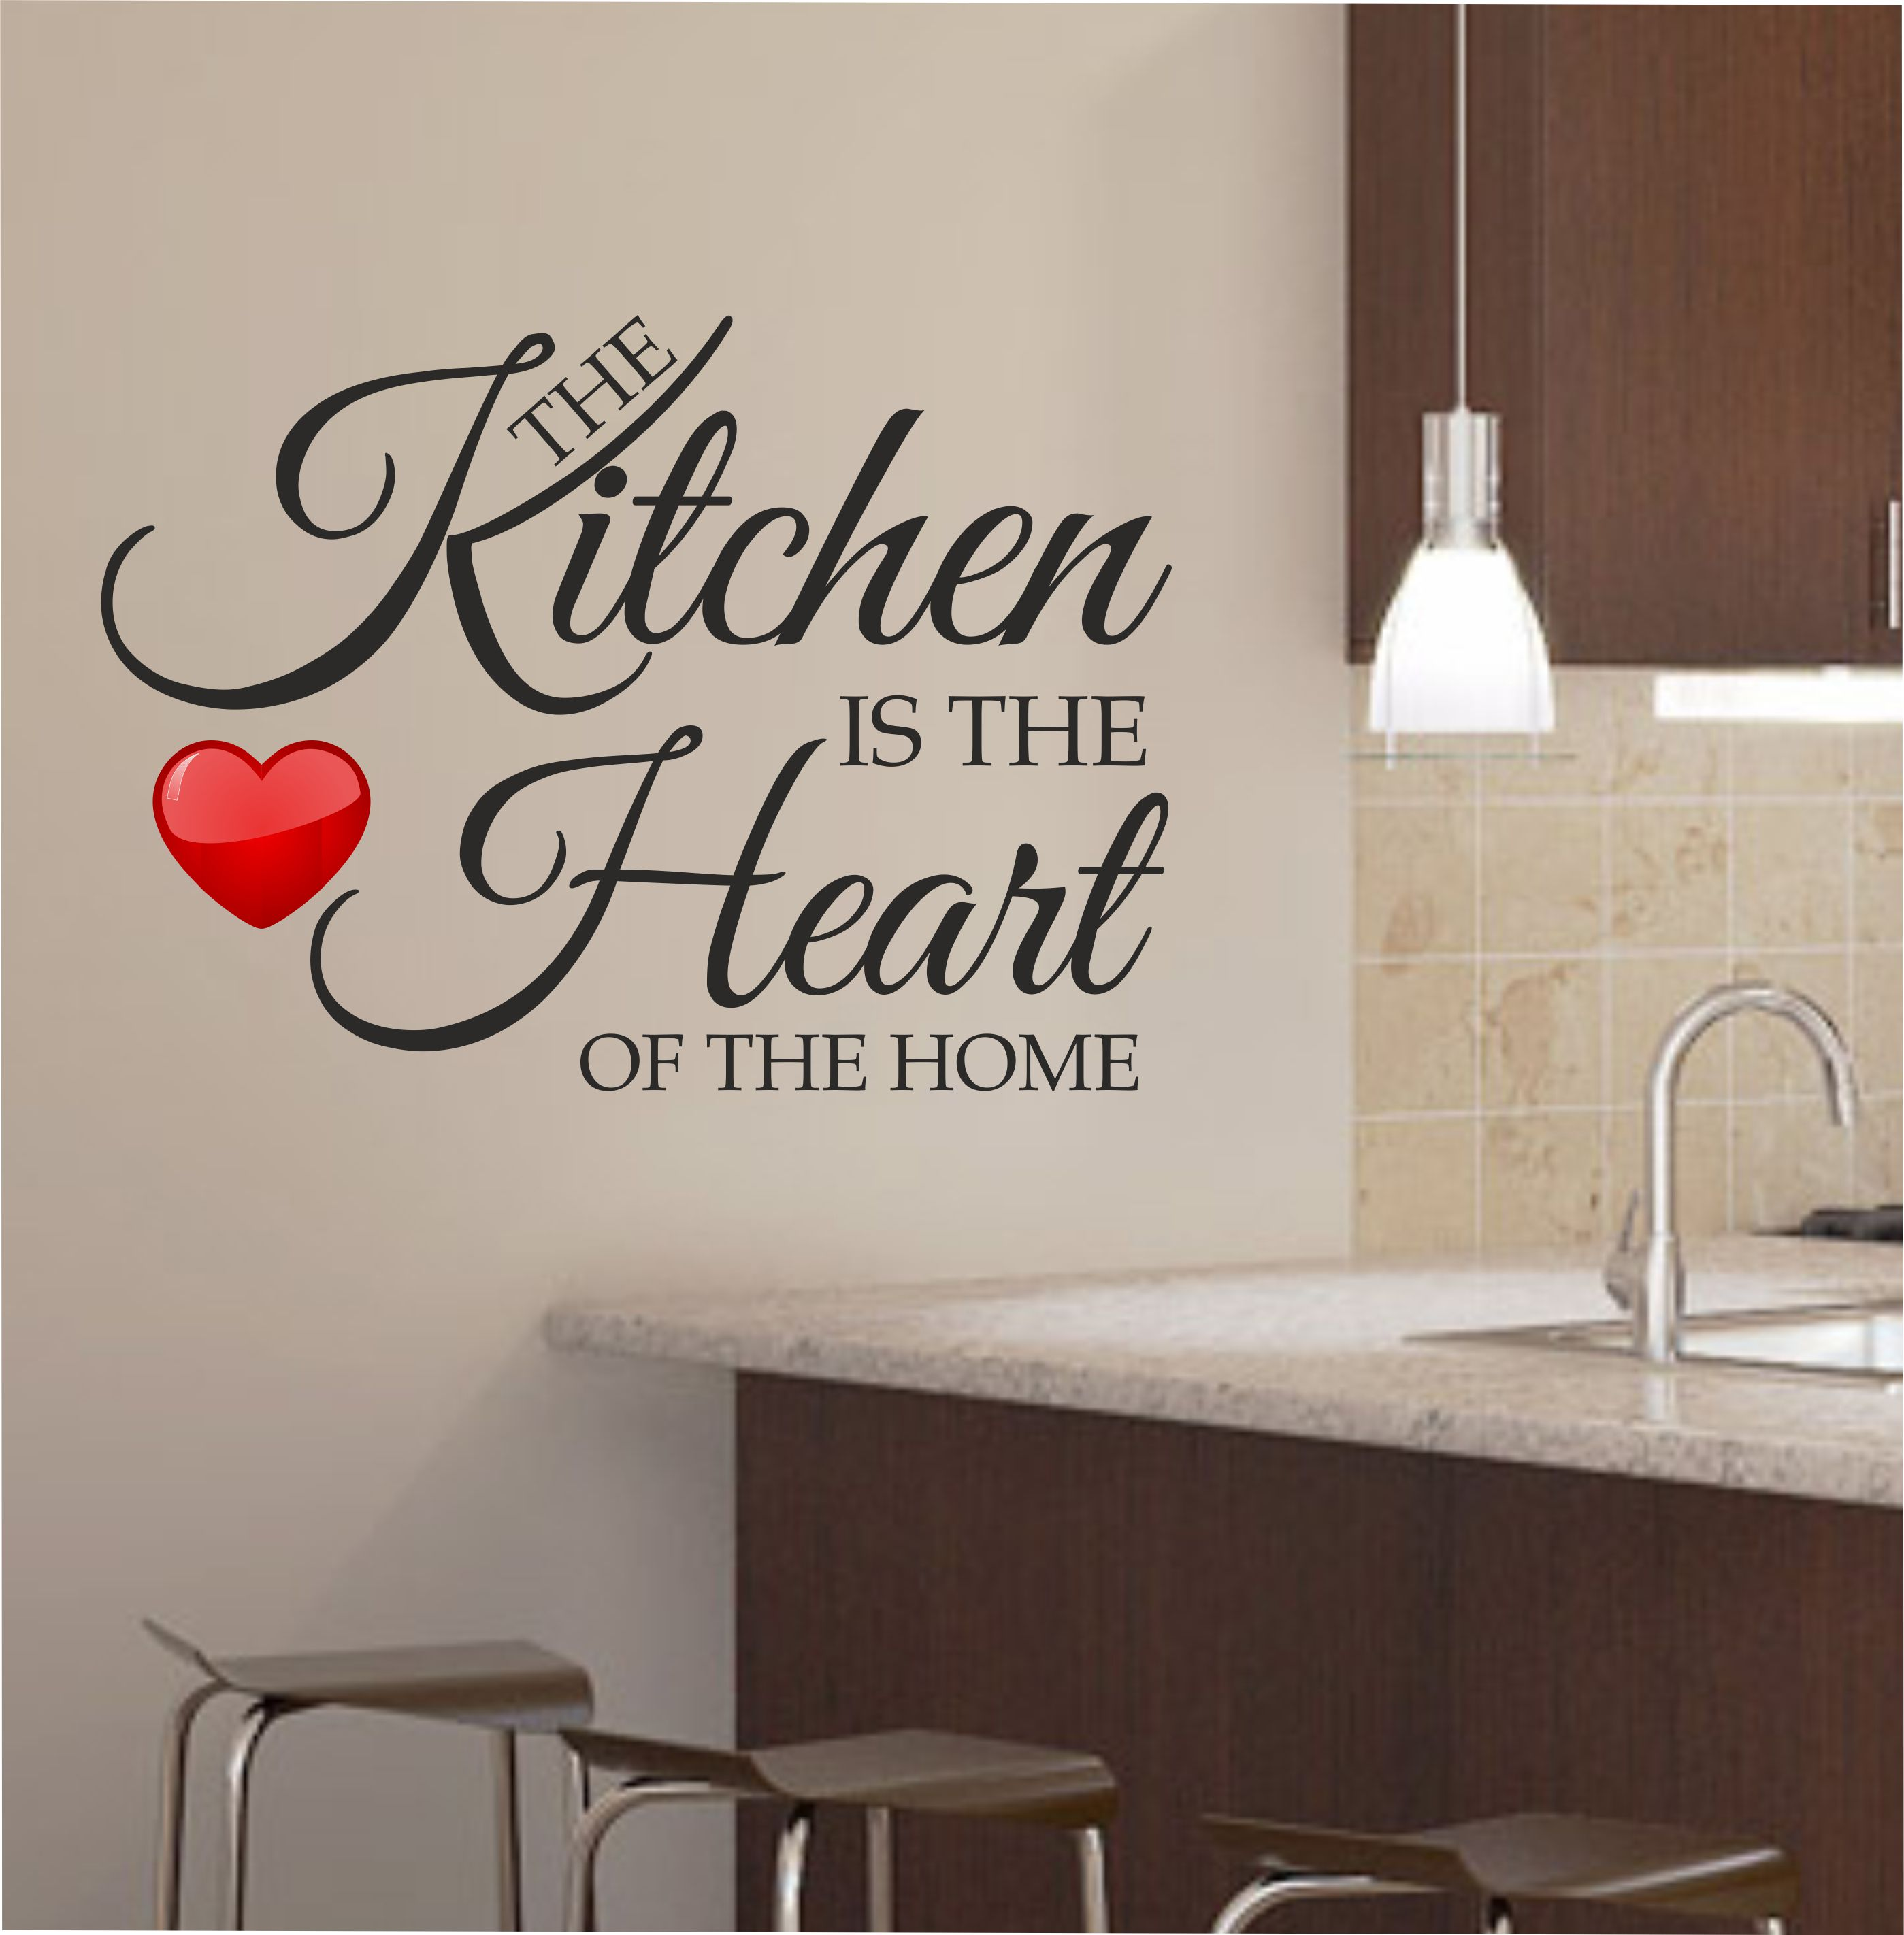 Kitchen wall art for a more fresh kitchen decor Kitchen wall ideas